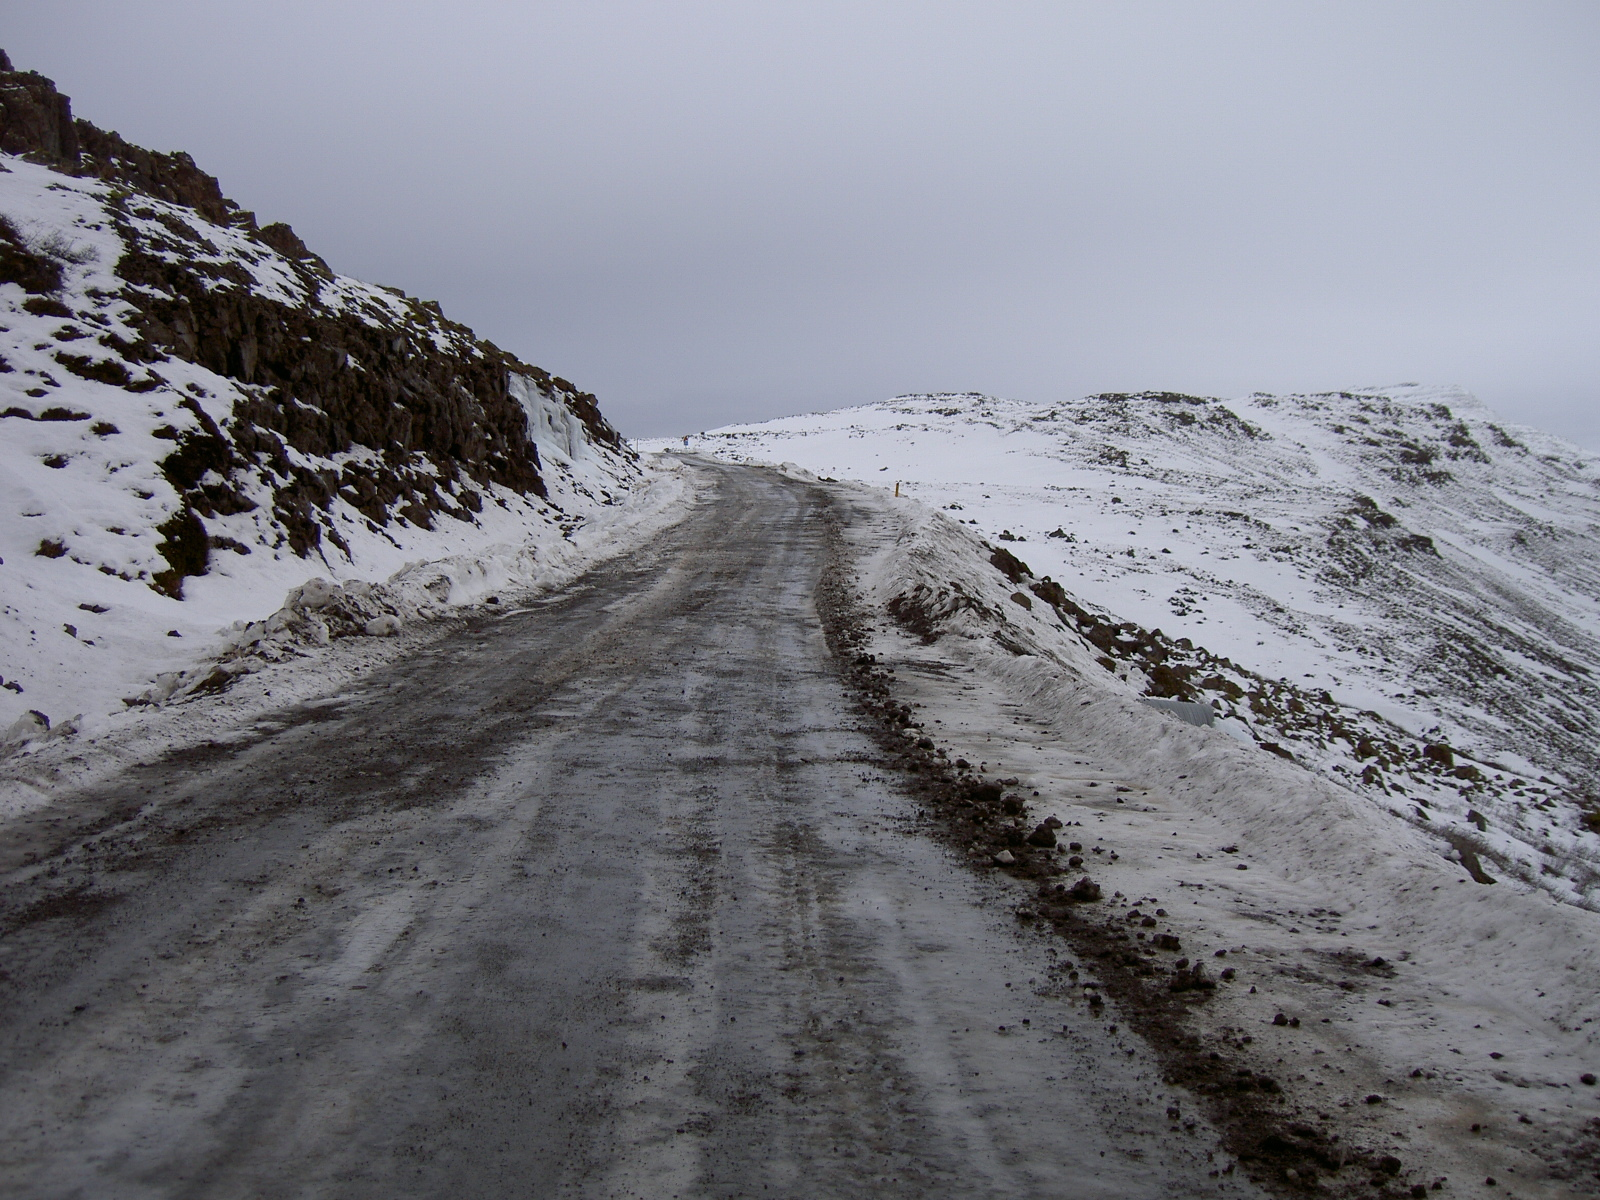 The impassable road at Trollahals (purpose of page is to display an image)